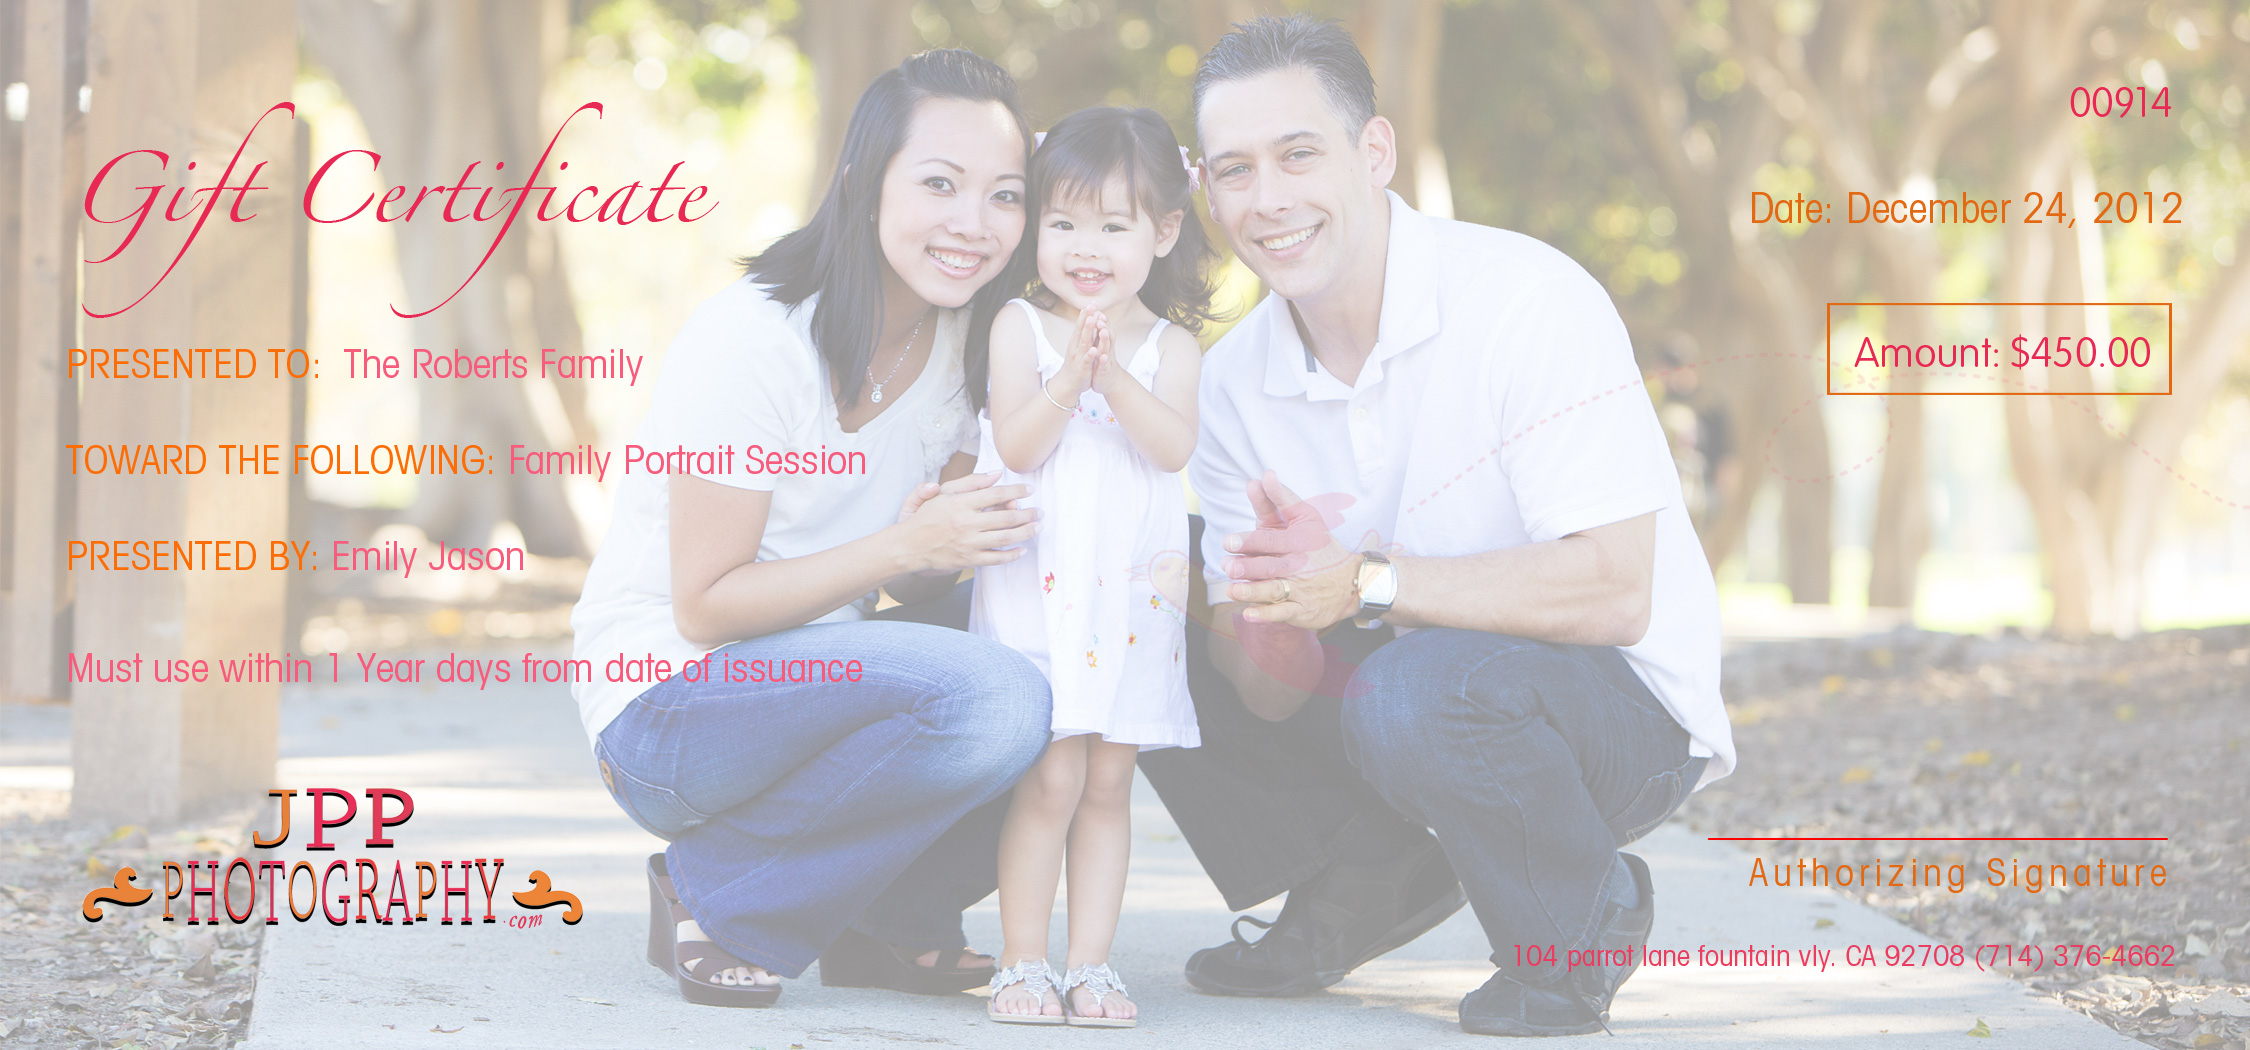 Orange County Christmas Portrait Photography Gift Certificates – Wording for Gift Certificates